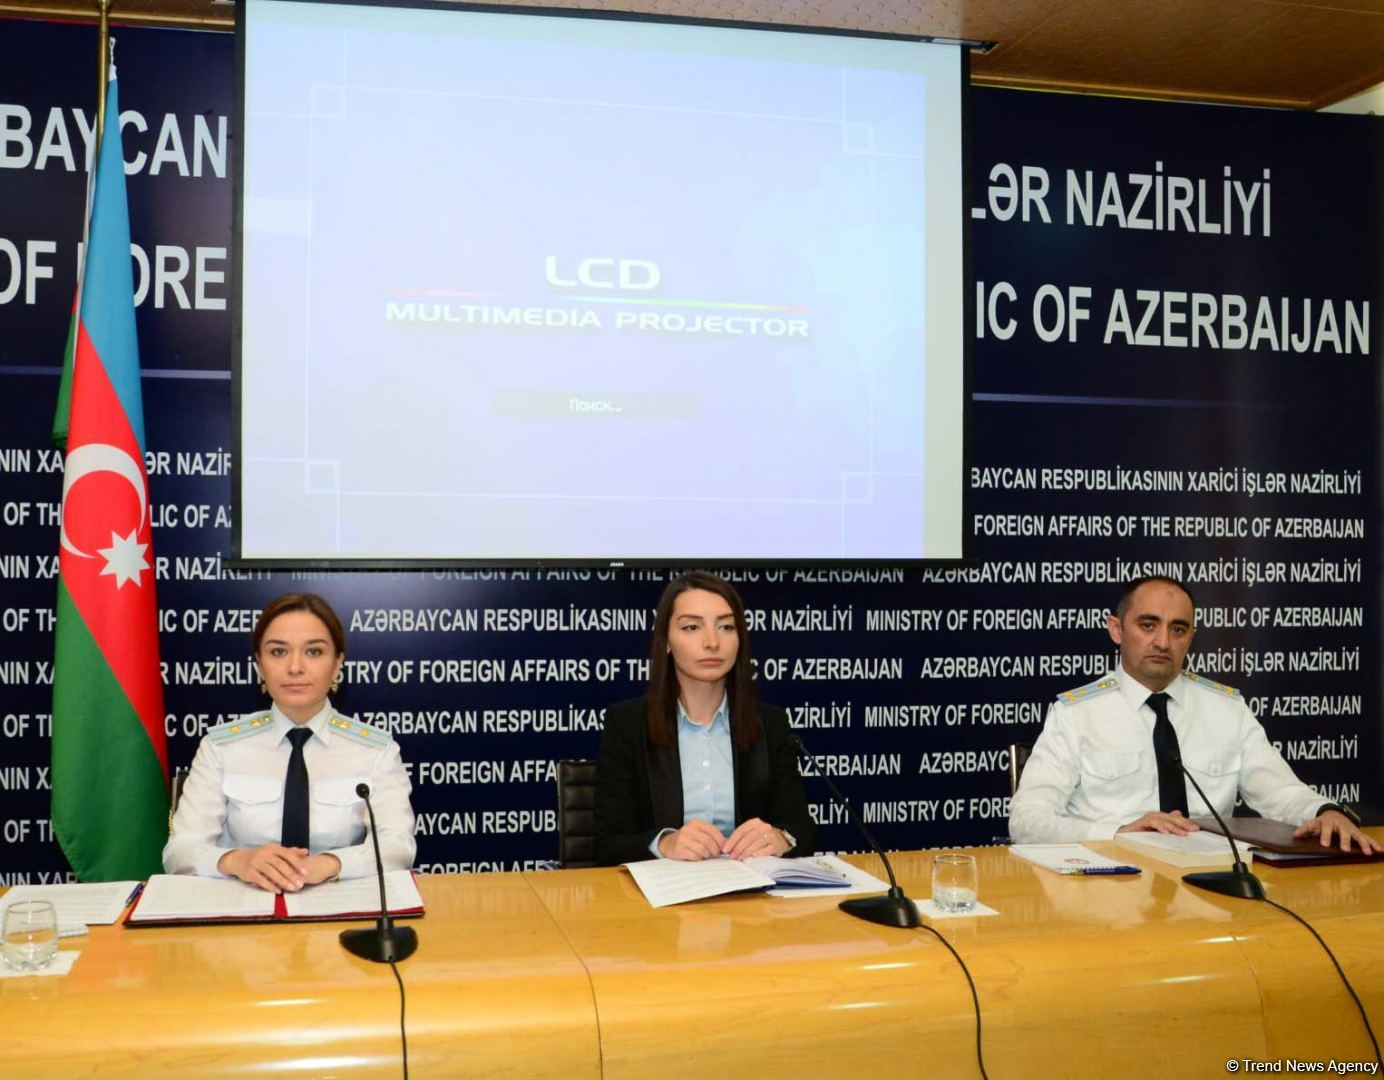 Azerbaijani Foreign Ministry, Prosecutor General's Office issue joint statement (PHOTO)